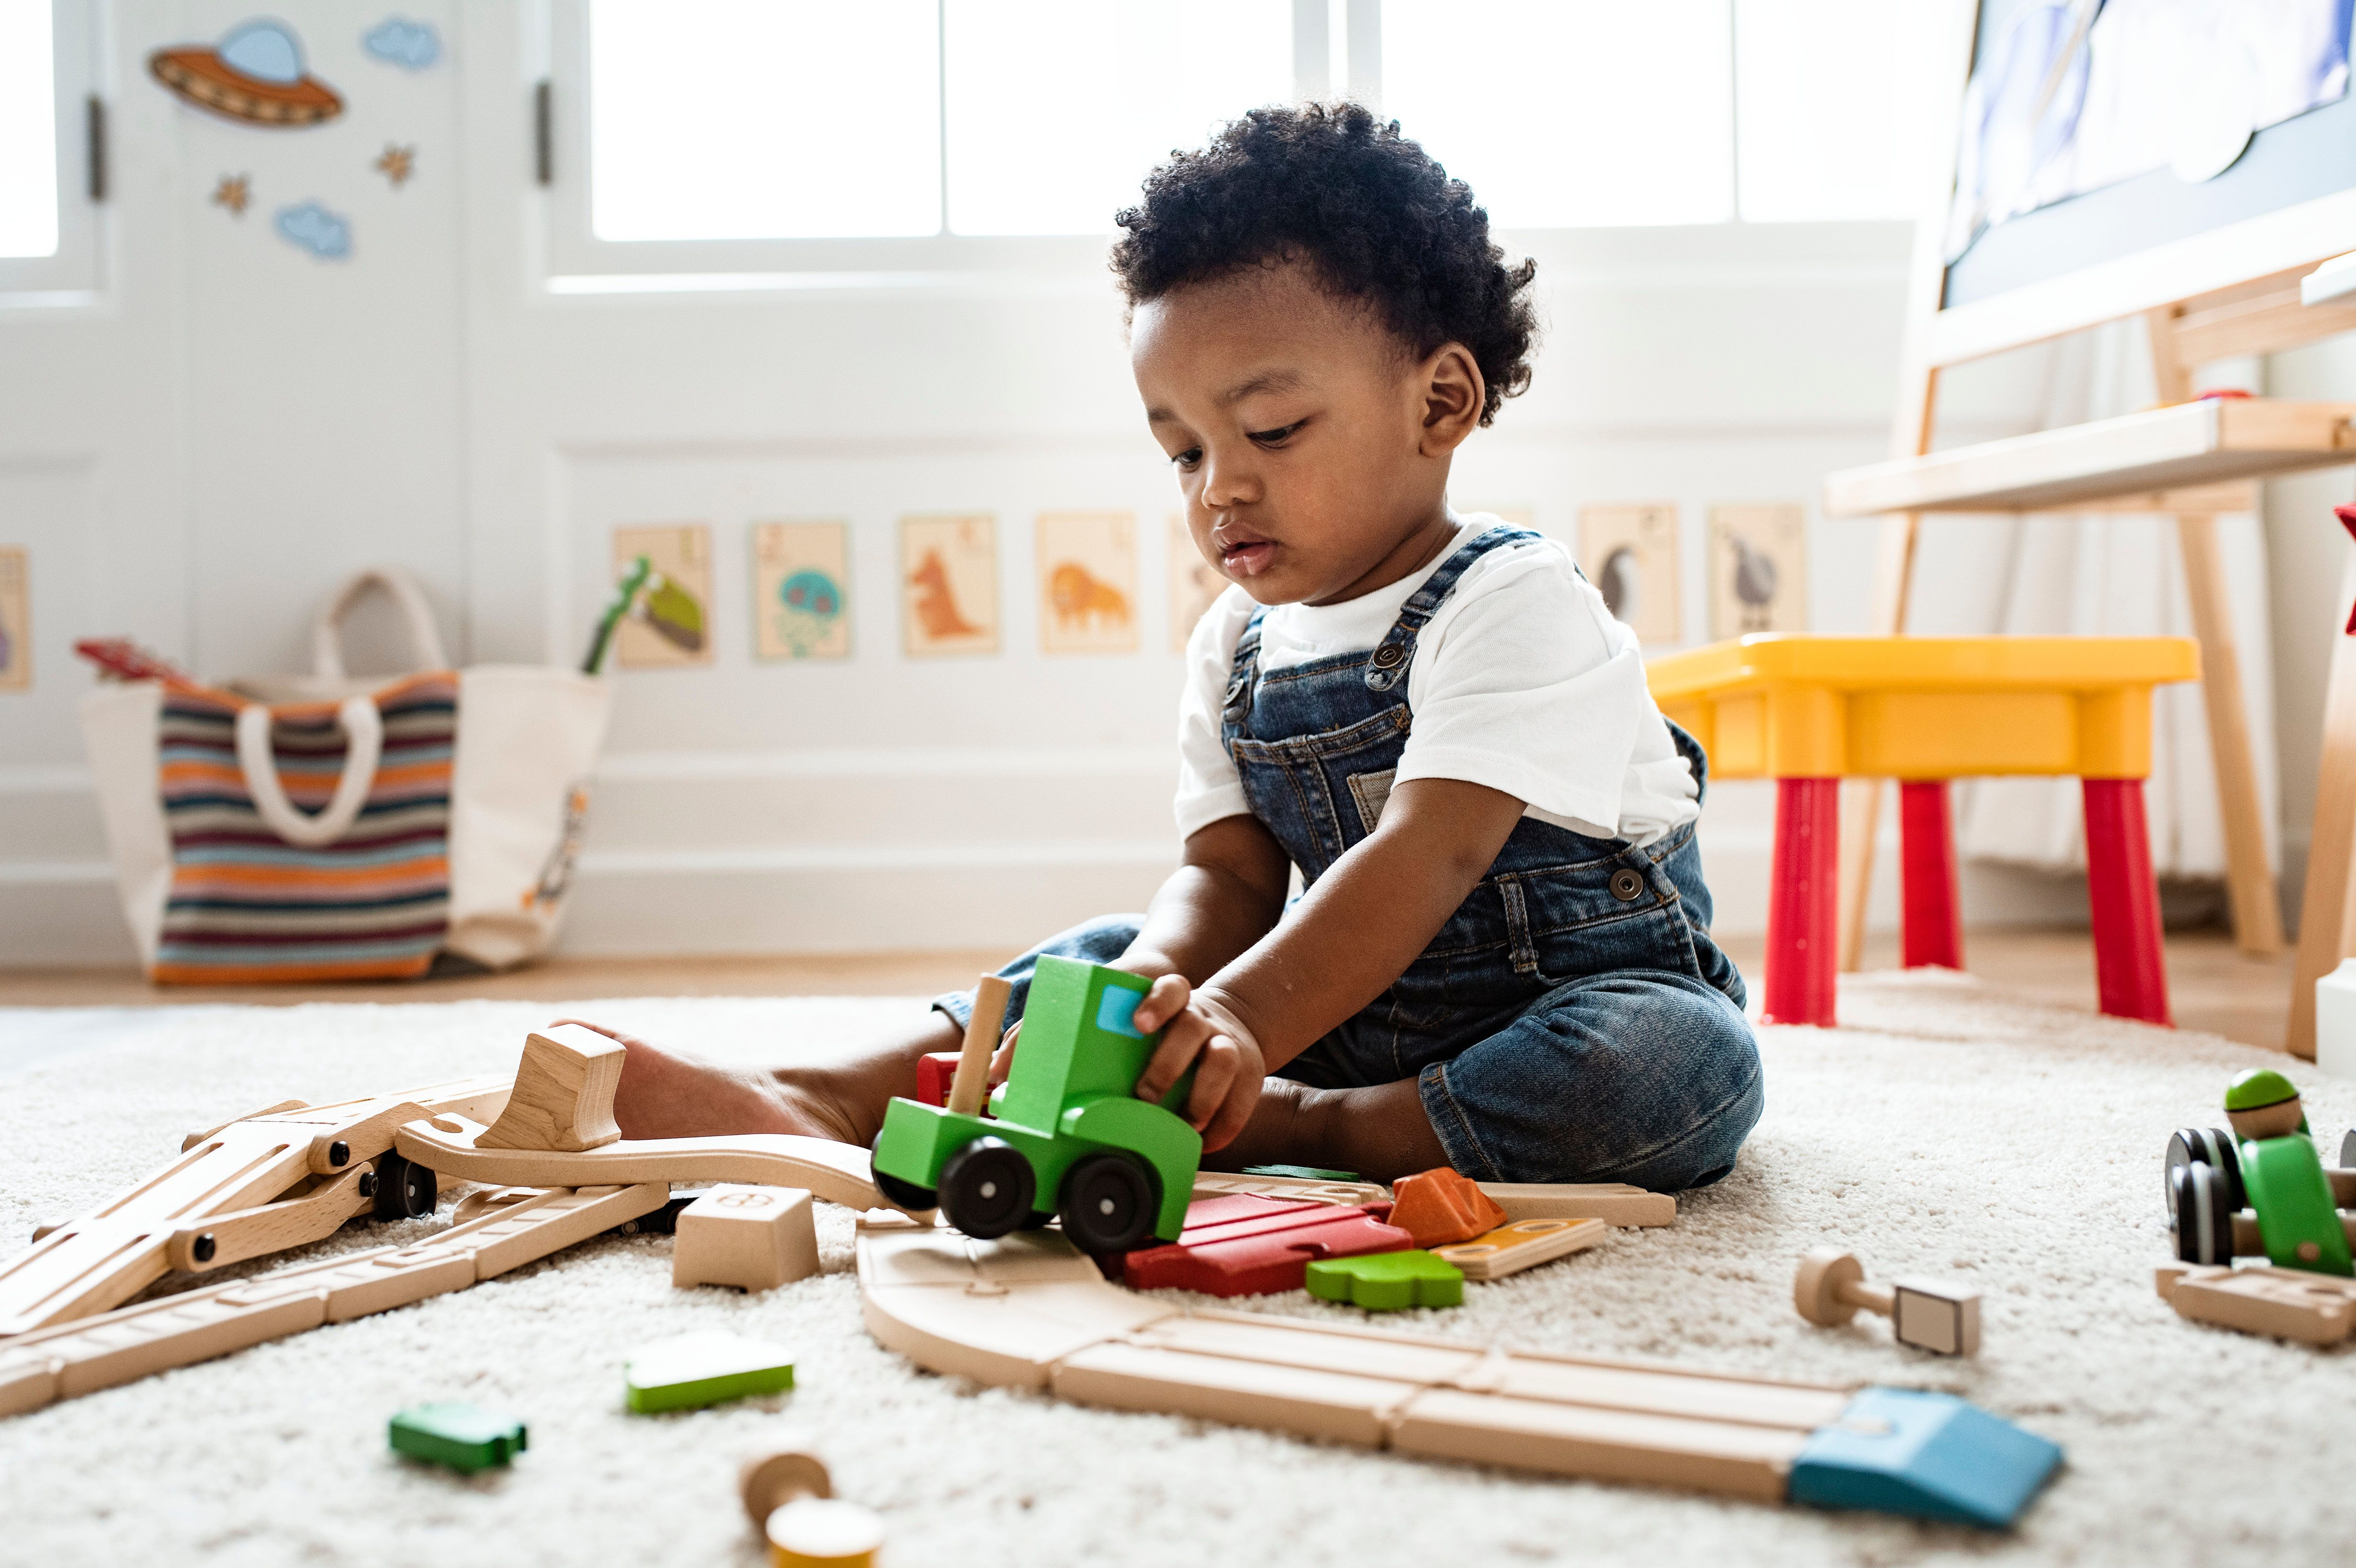 Childcare Is Broken In America. Washington D.C. Has A Plan To Fix It.